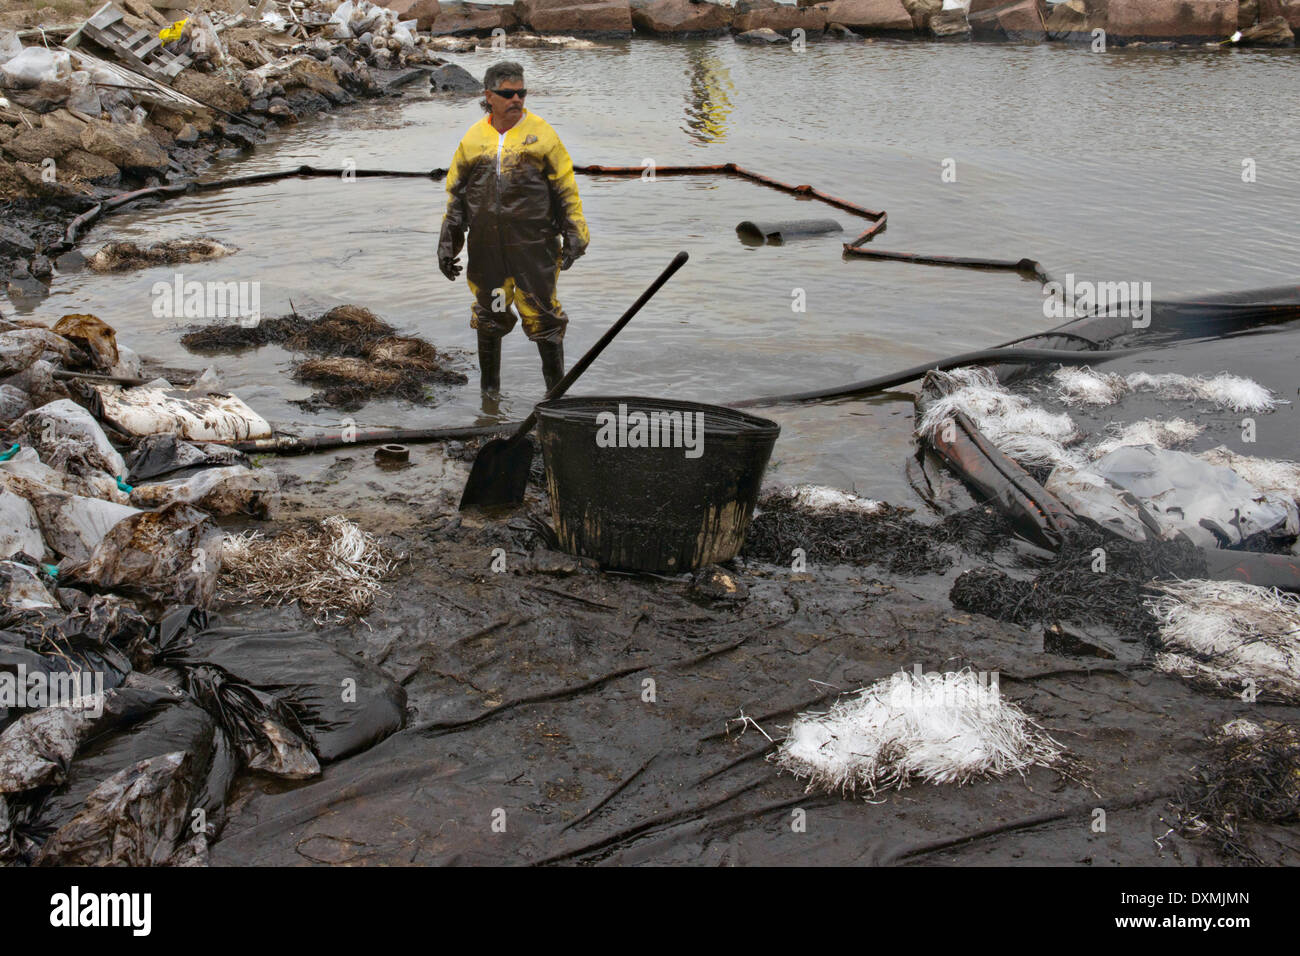 Cleanup crews fill bags with oil-absorbent material after a collision between a bulk carrier and the barge near Texas City Dike spilling oil into an environmentally sensitive area at Big Reef March 26, 2014 in Galveston, Texas. - Stock Image